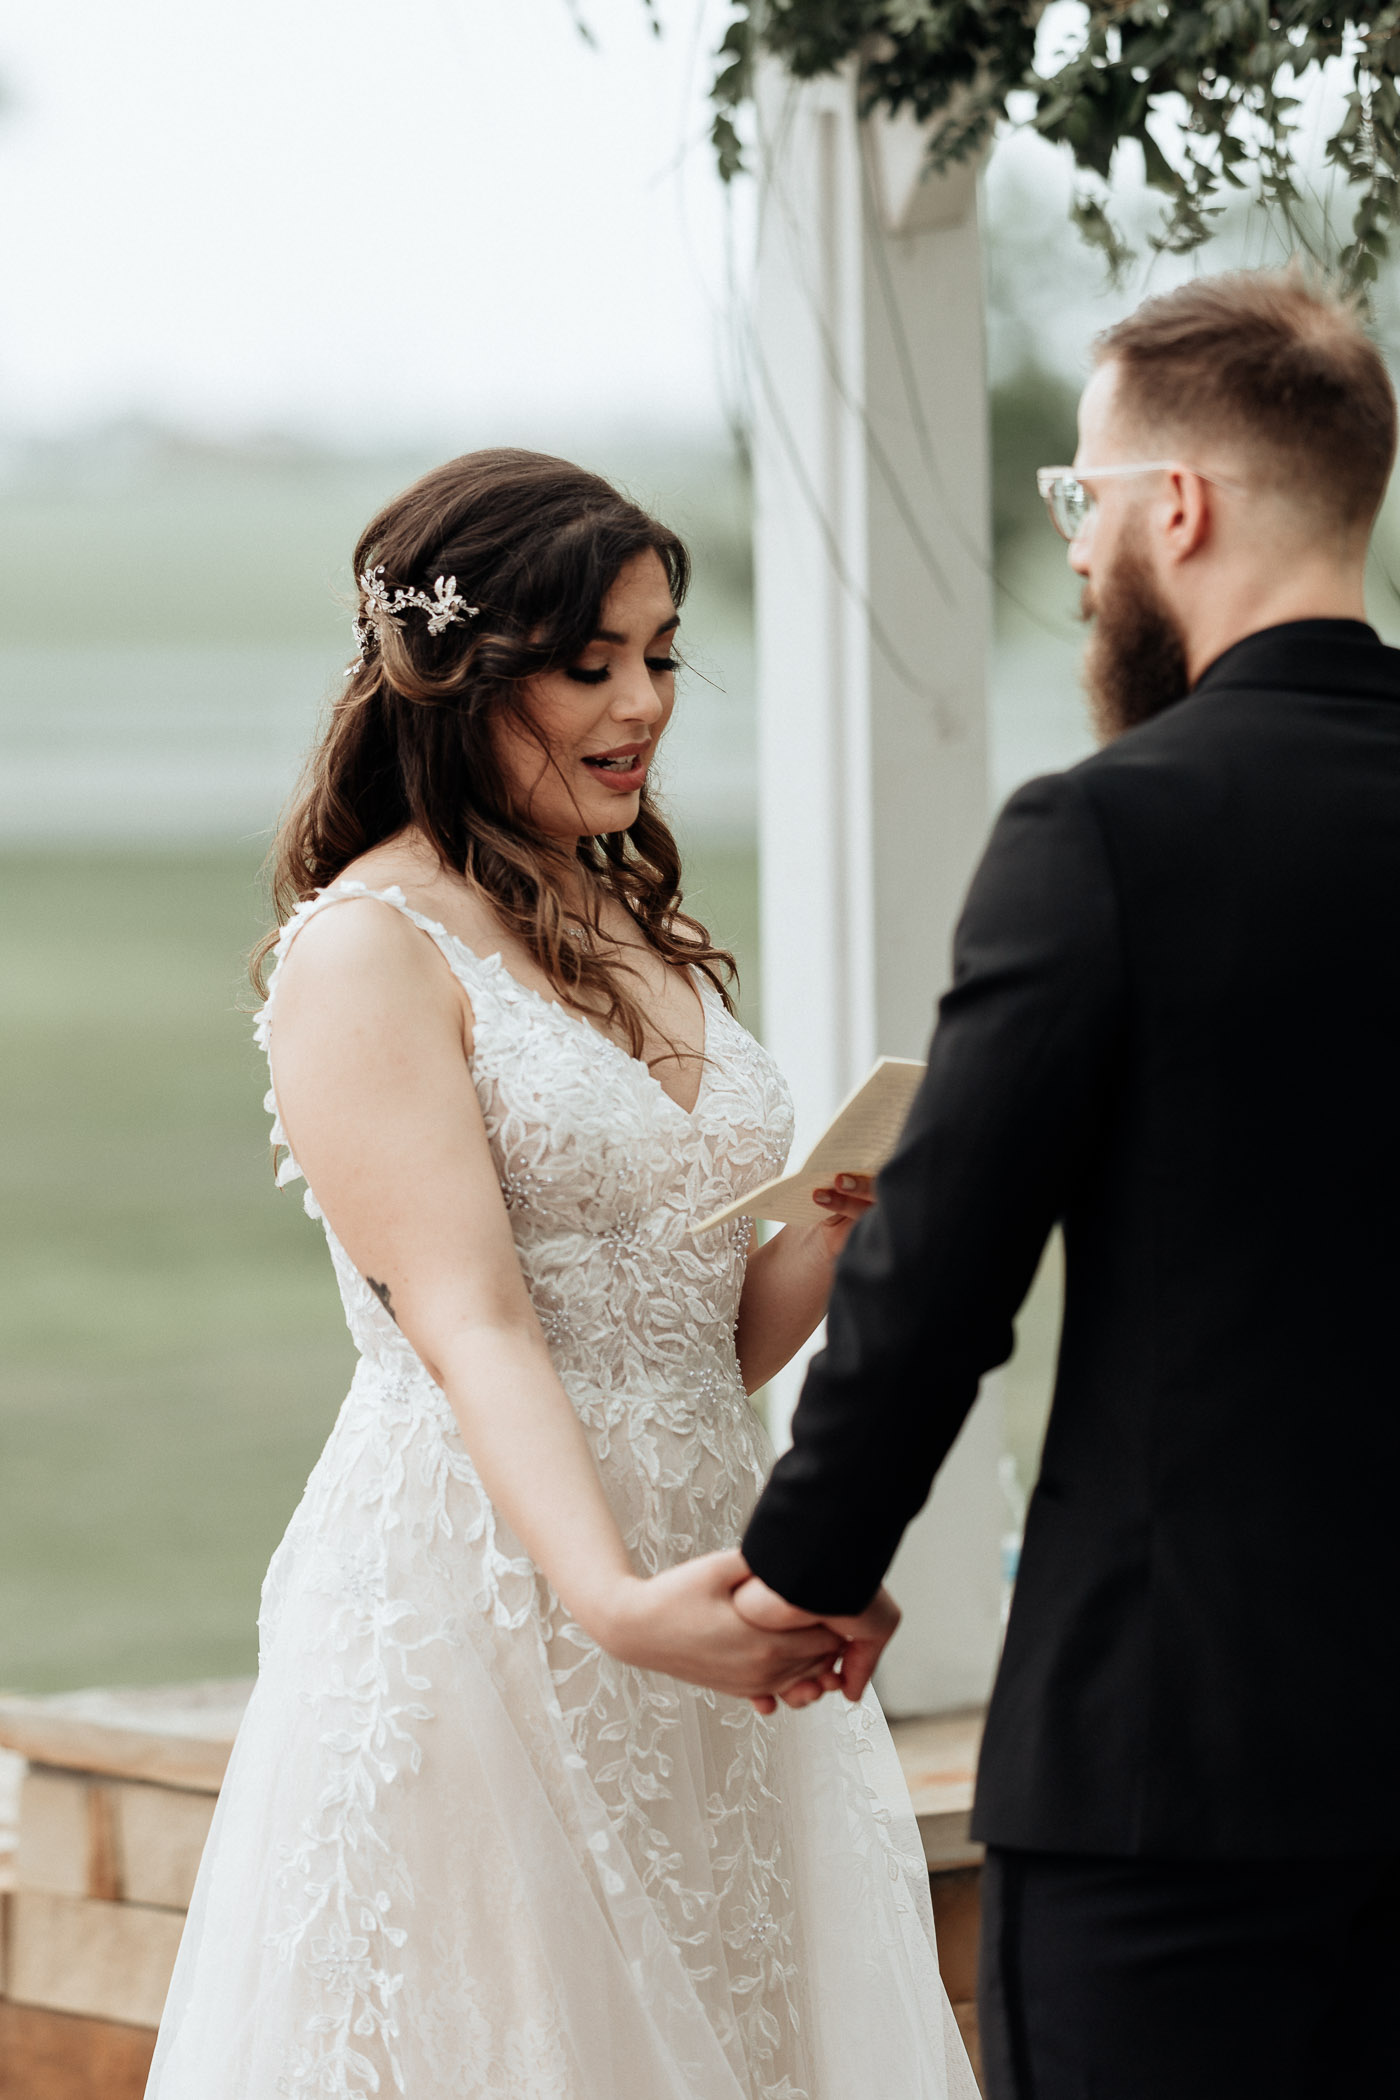 Bride reading her wedding vows during outdoor wedding ceremony in Texas